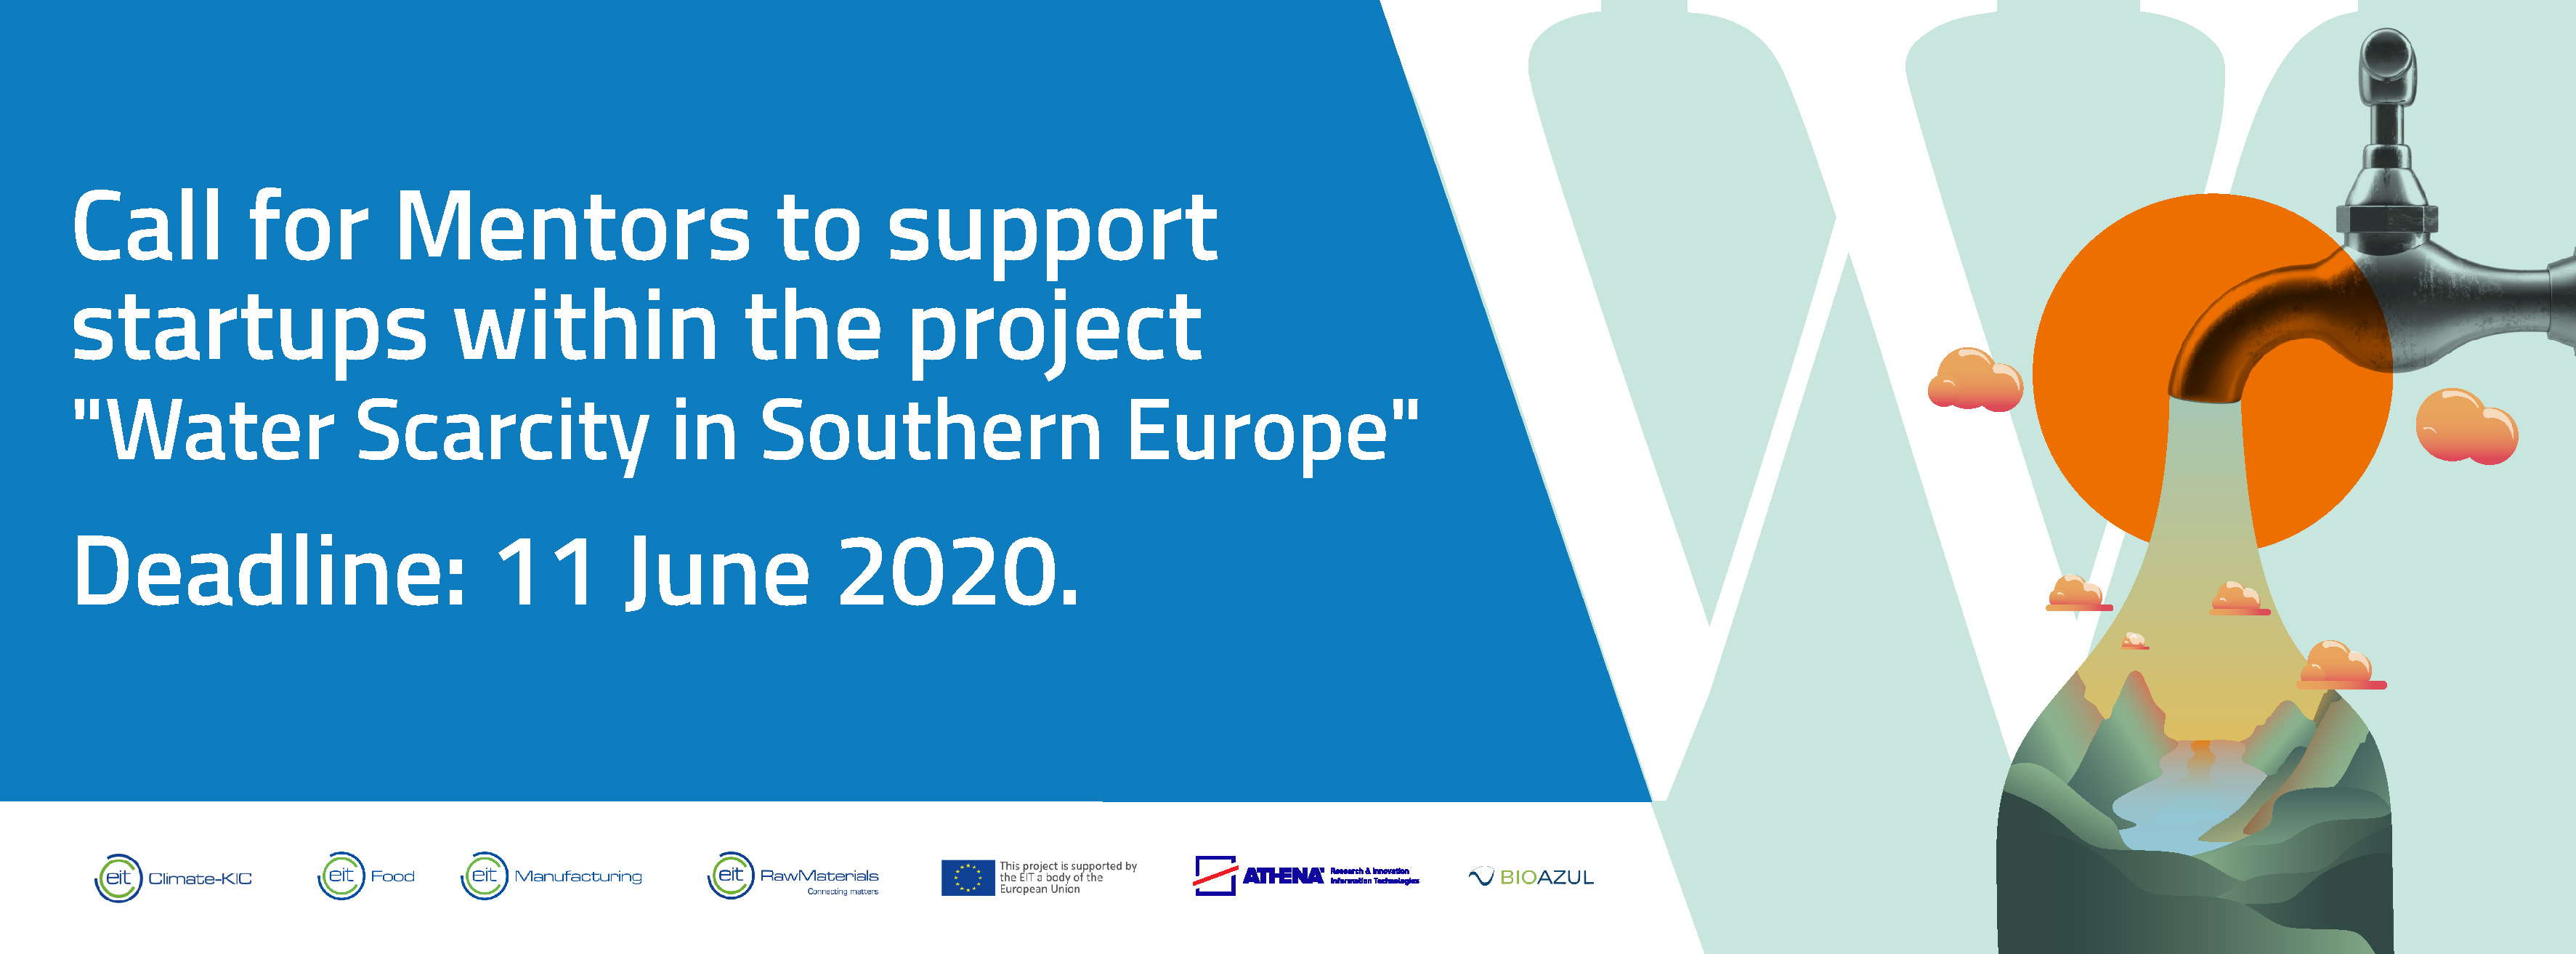 Call for mentors to support startups on innovative solutions for Water Scarcity in Southern Europe